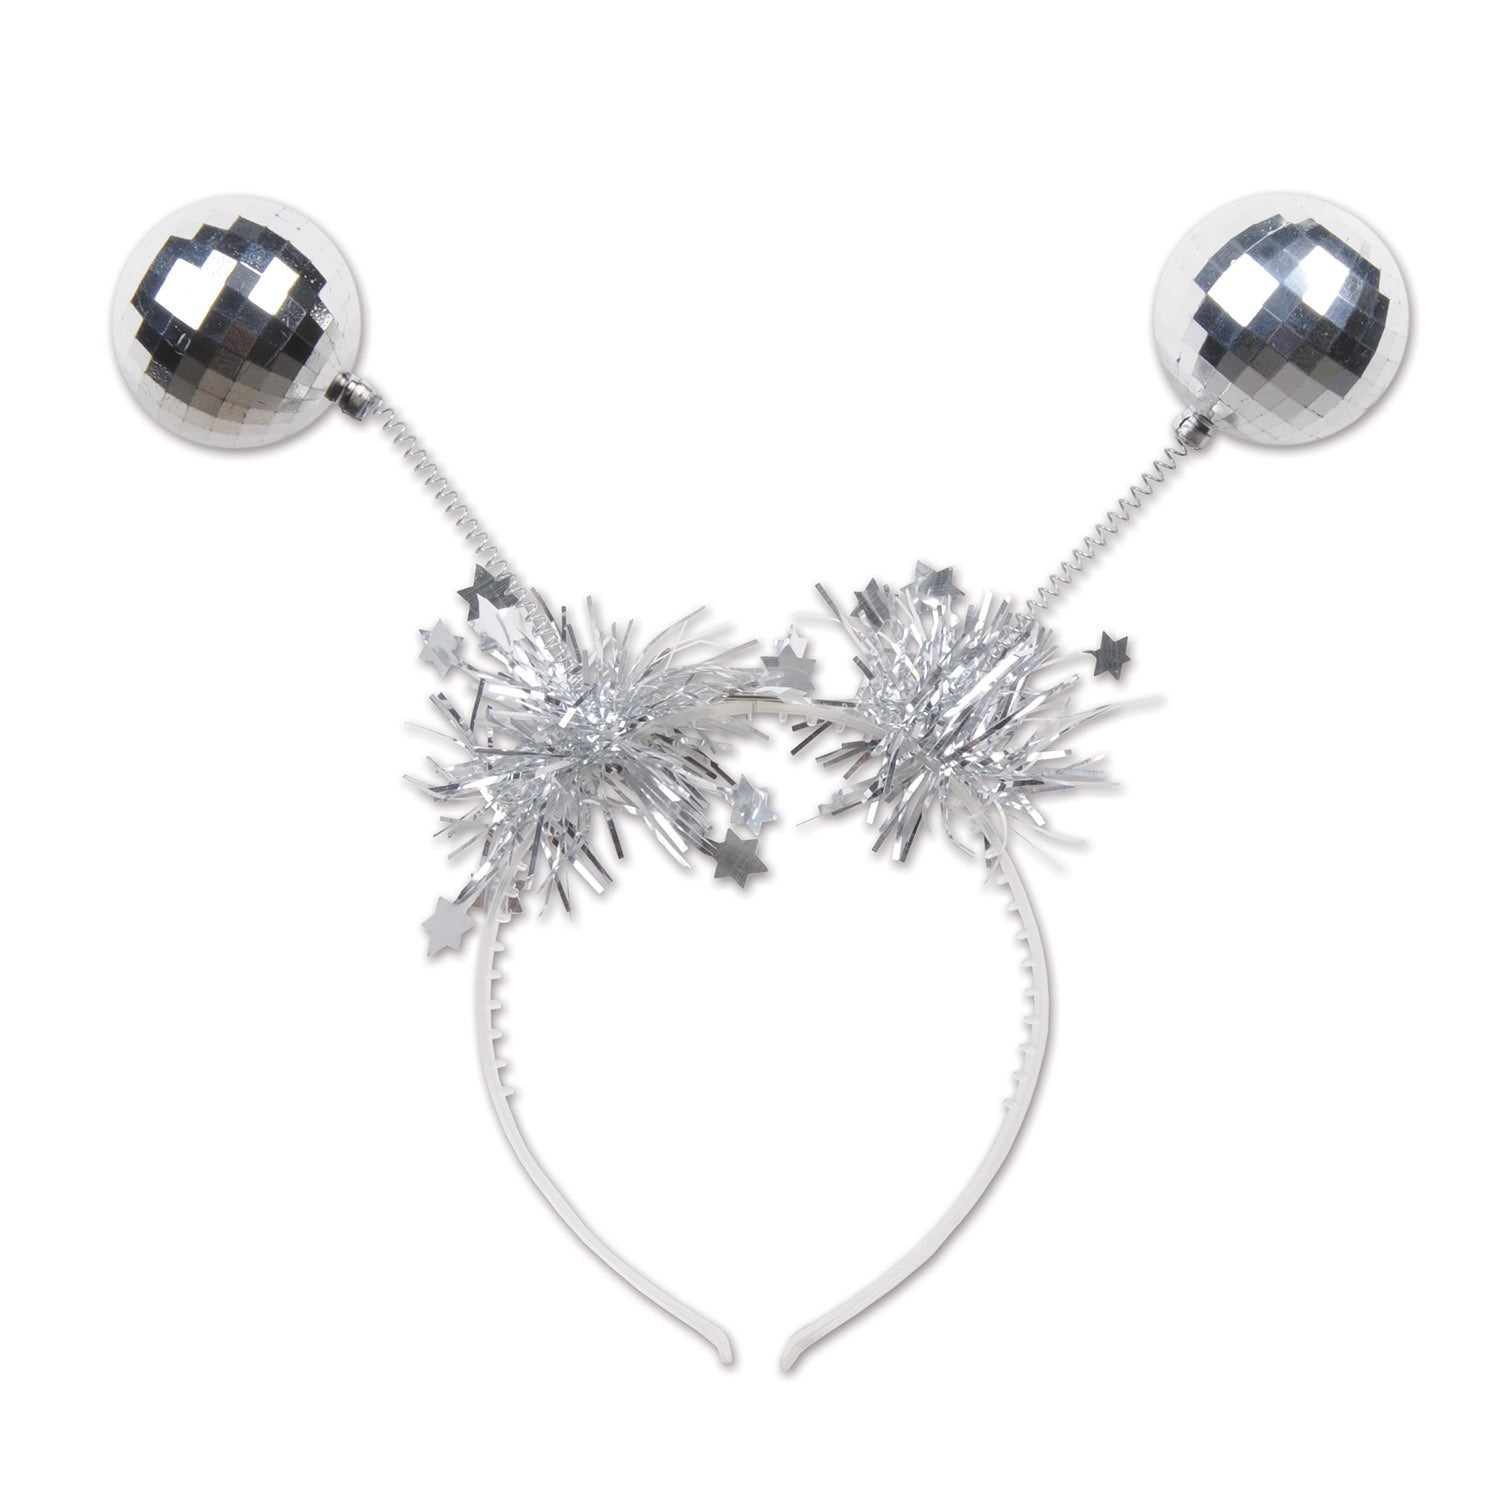 Silver Ball Boppers by Beistle - Winter and Christmas Theme Decorations